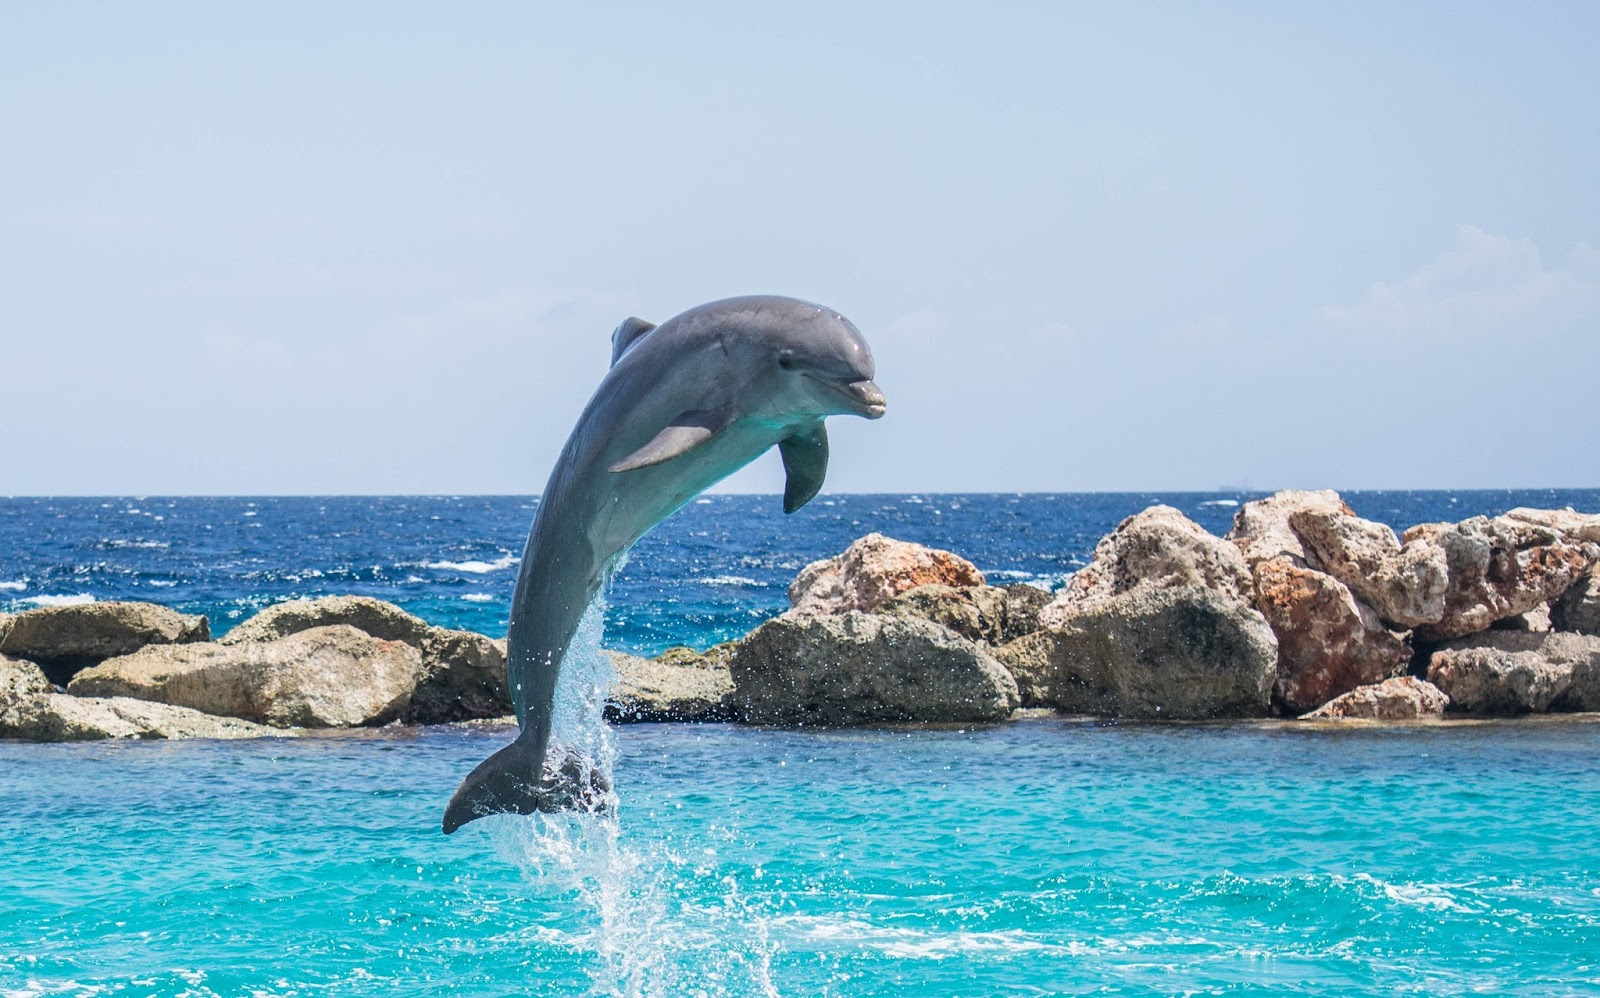 A dolphin jumping out of water.